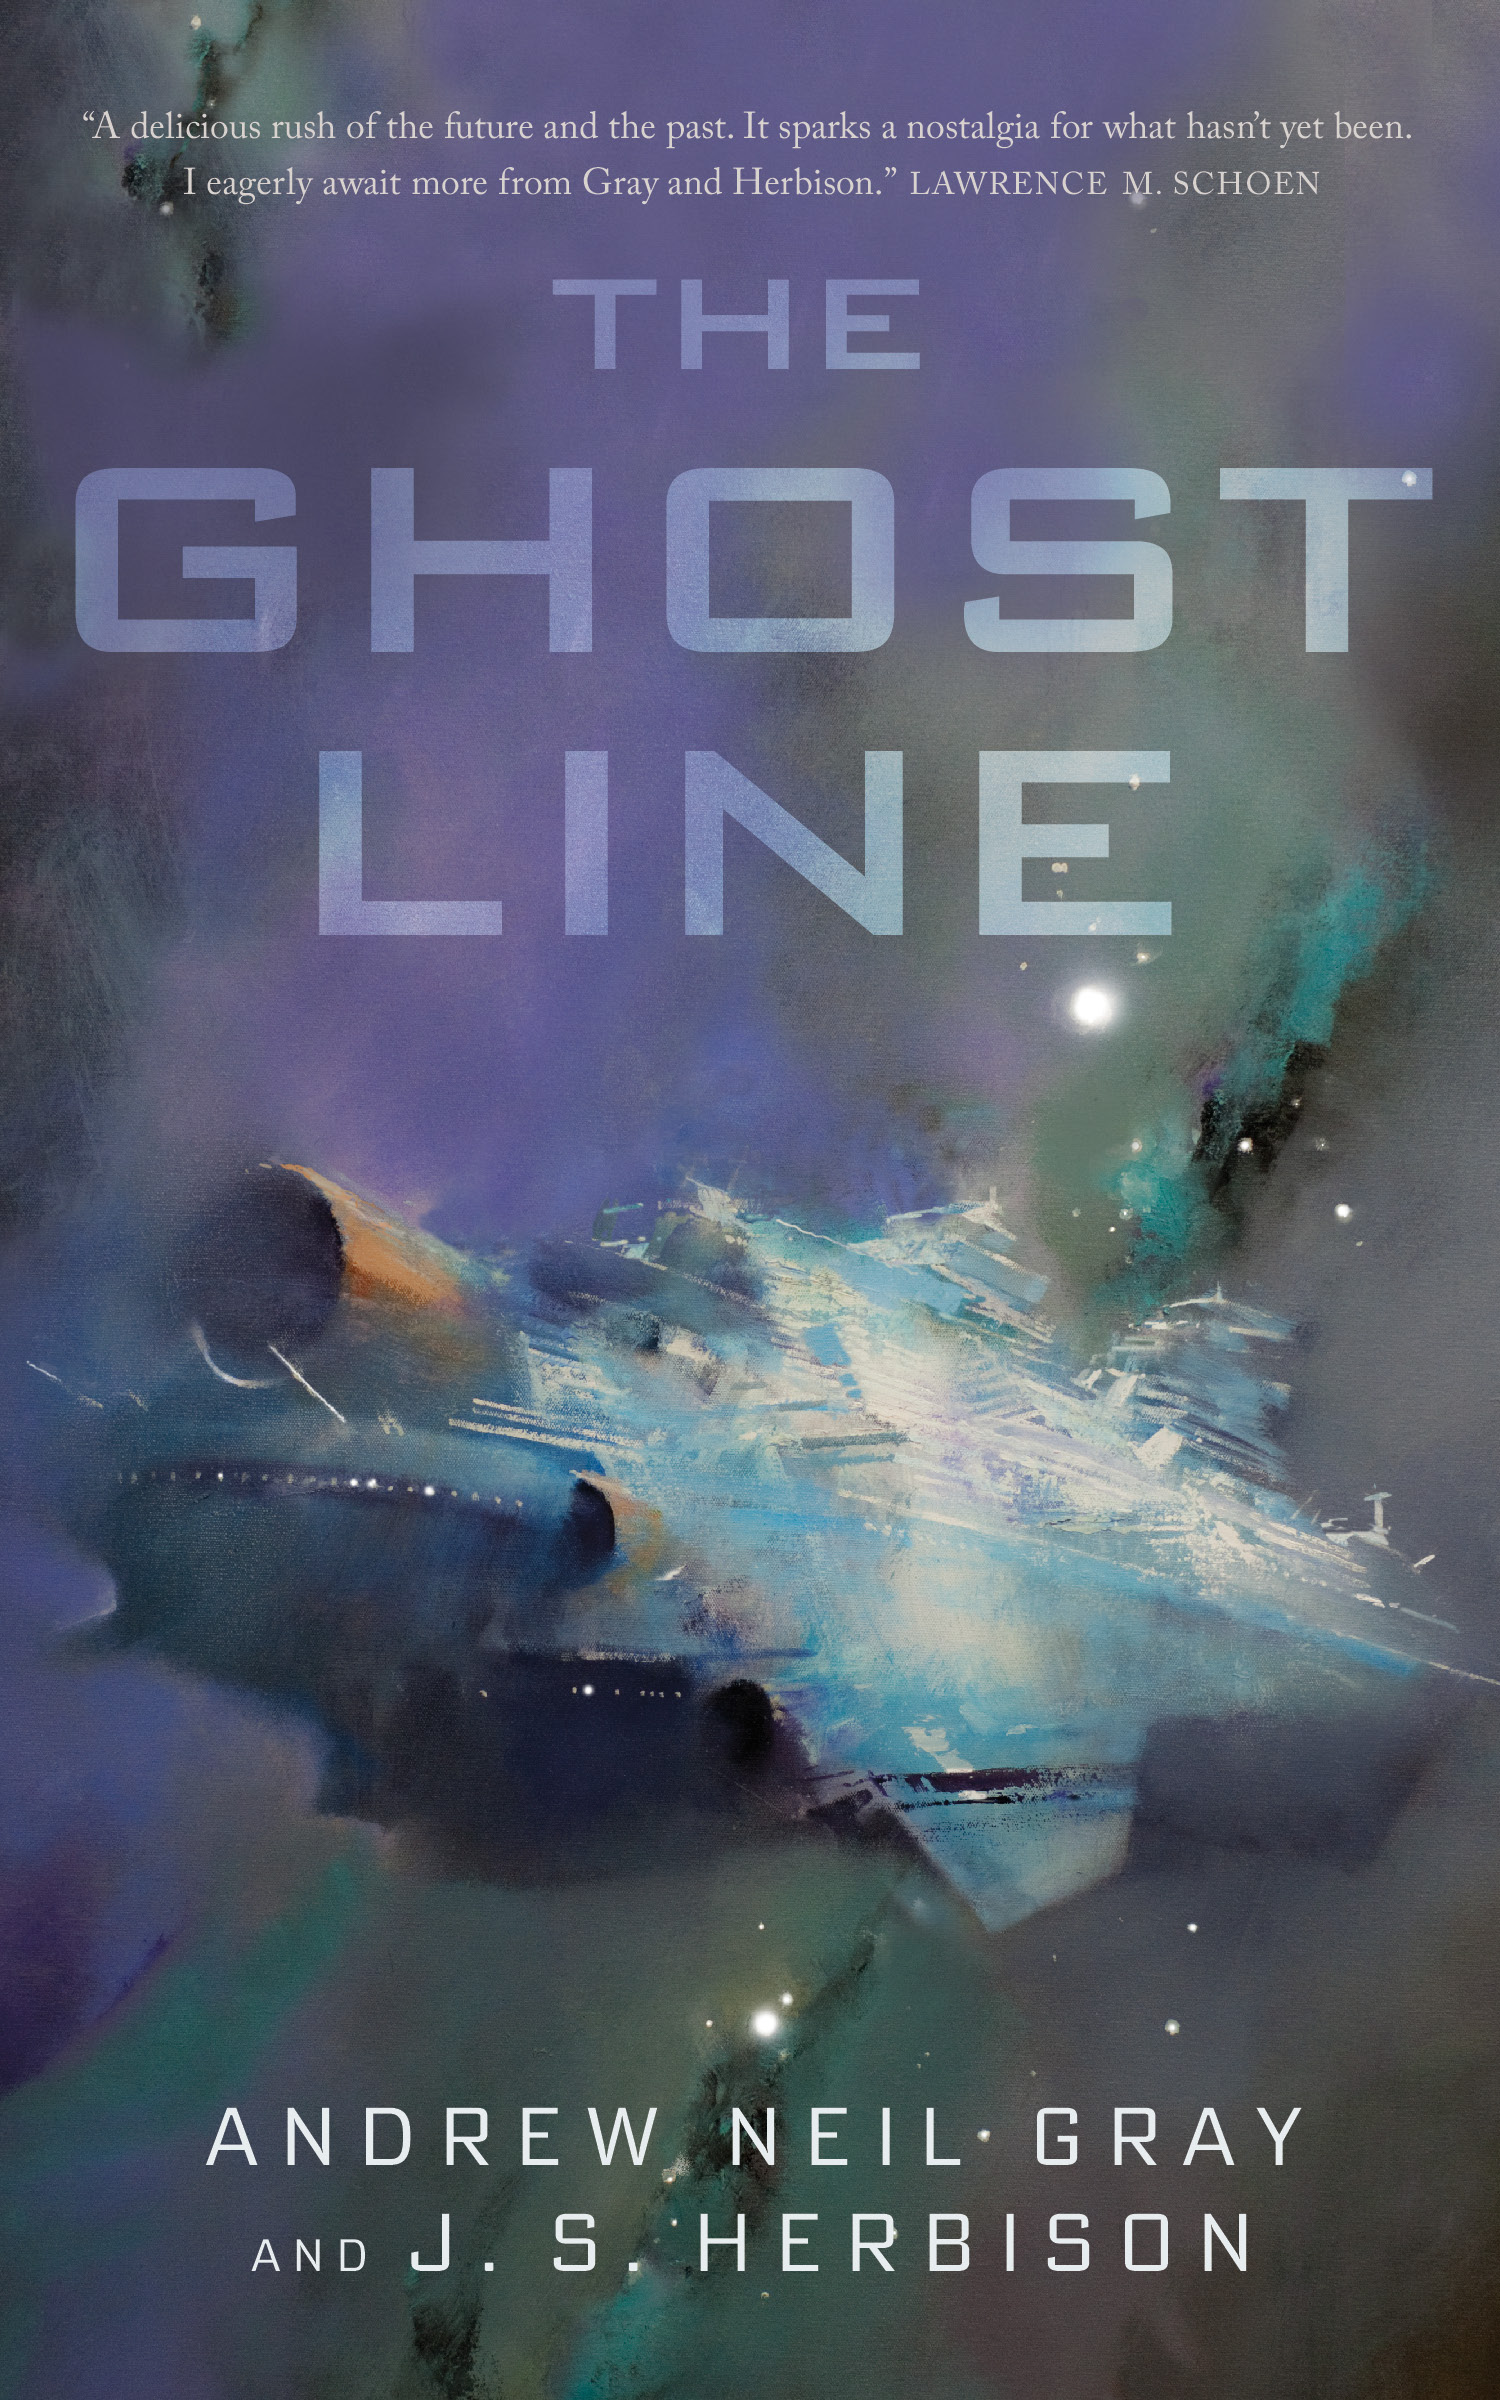 The Ghost Line by Andrew Neil Gray and J. S. Herbison